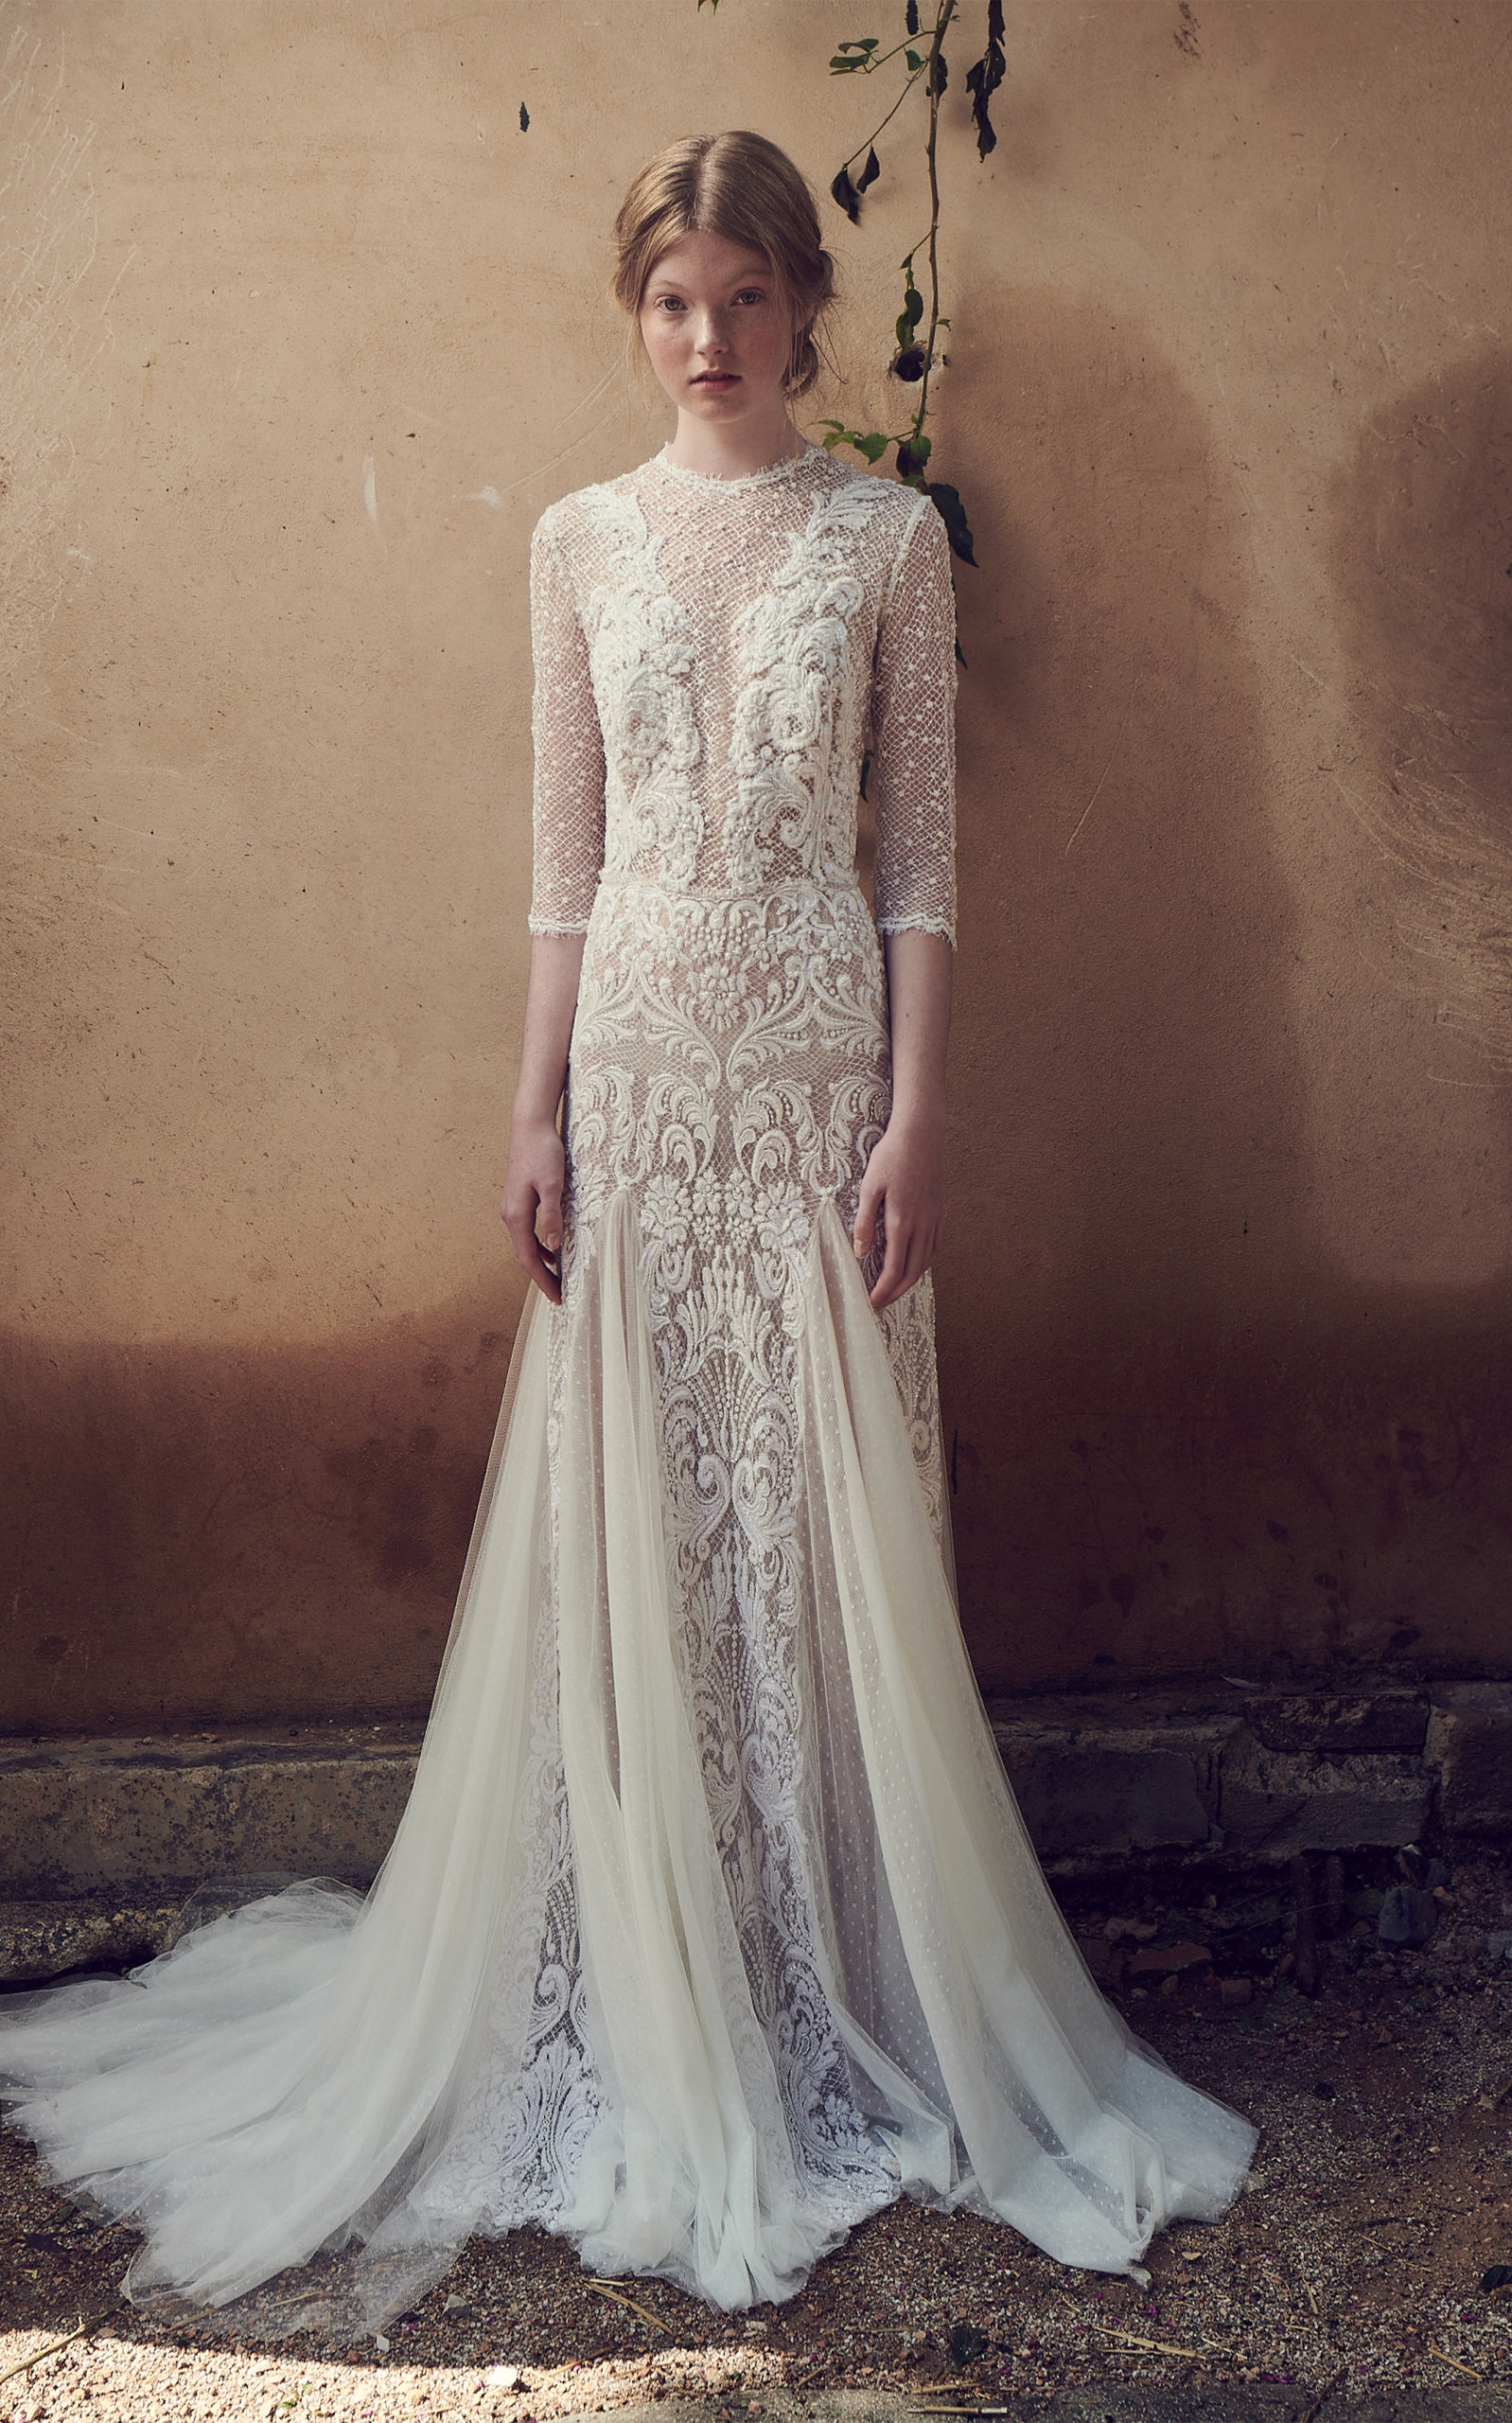 COSTARELLOS BRIDAL Mesh Bodice Edging Embroidered Tulle Long Godet Dress in White